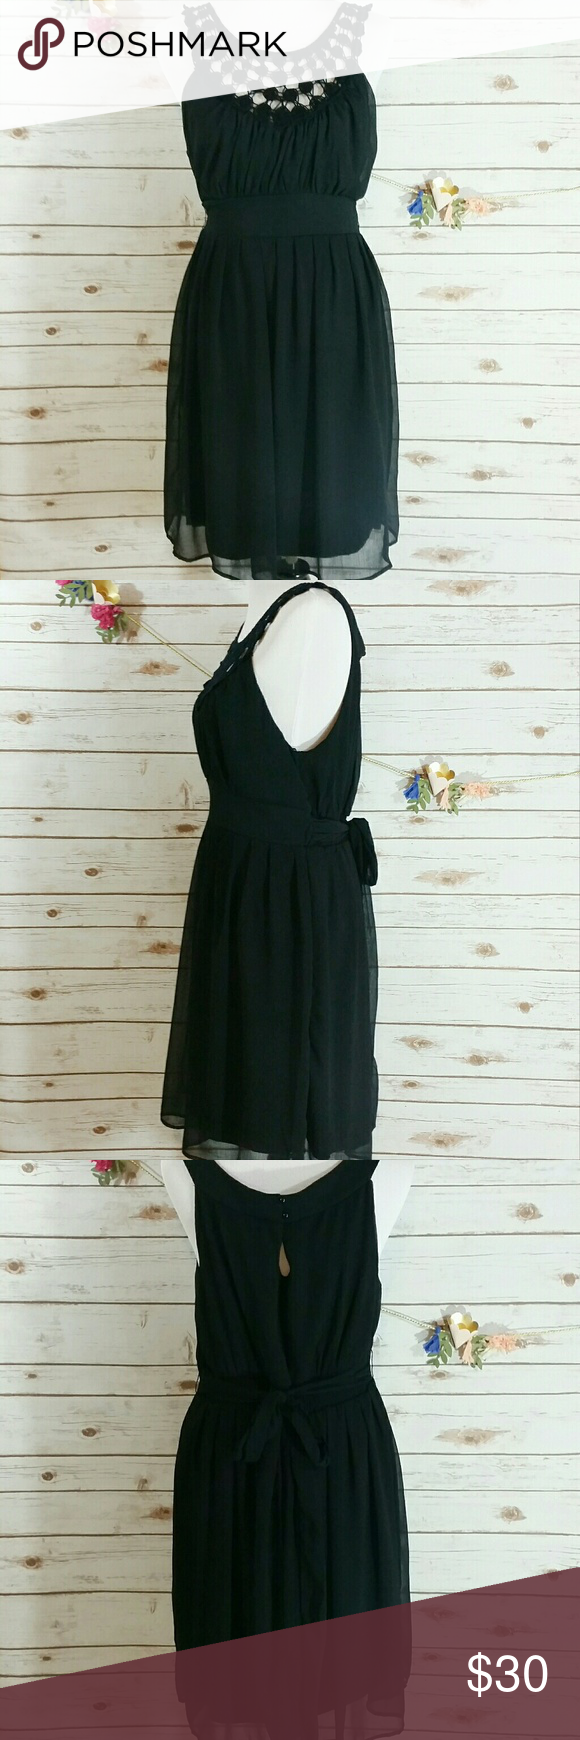 "Black crochet top dress with sheer overlay This dress has a crochet like top, sheer overlay, and a ribbon tie in back. It also has two small buttons at the top and a cut out below that. 100% polyester. Length is approx 27"", bust is approx 34"". Jonathan Martin Dresses Midi"